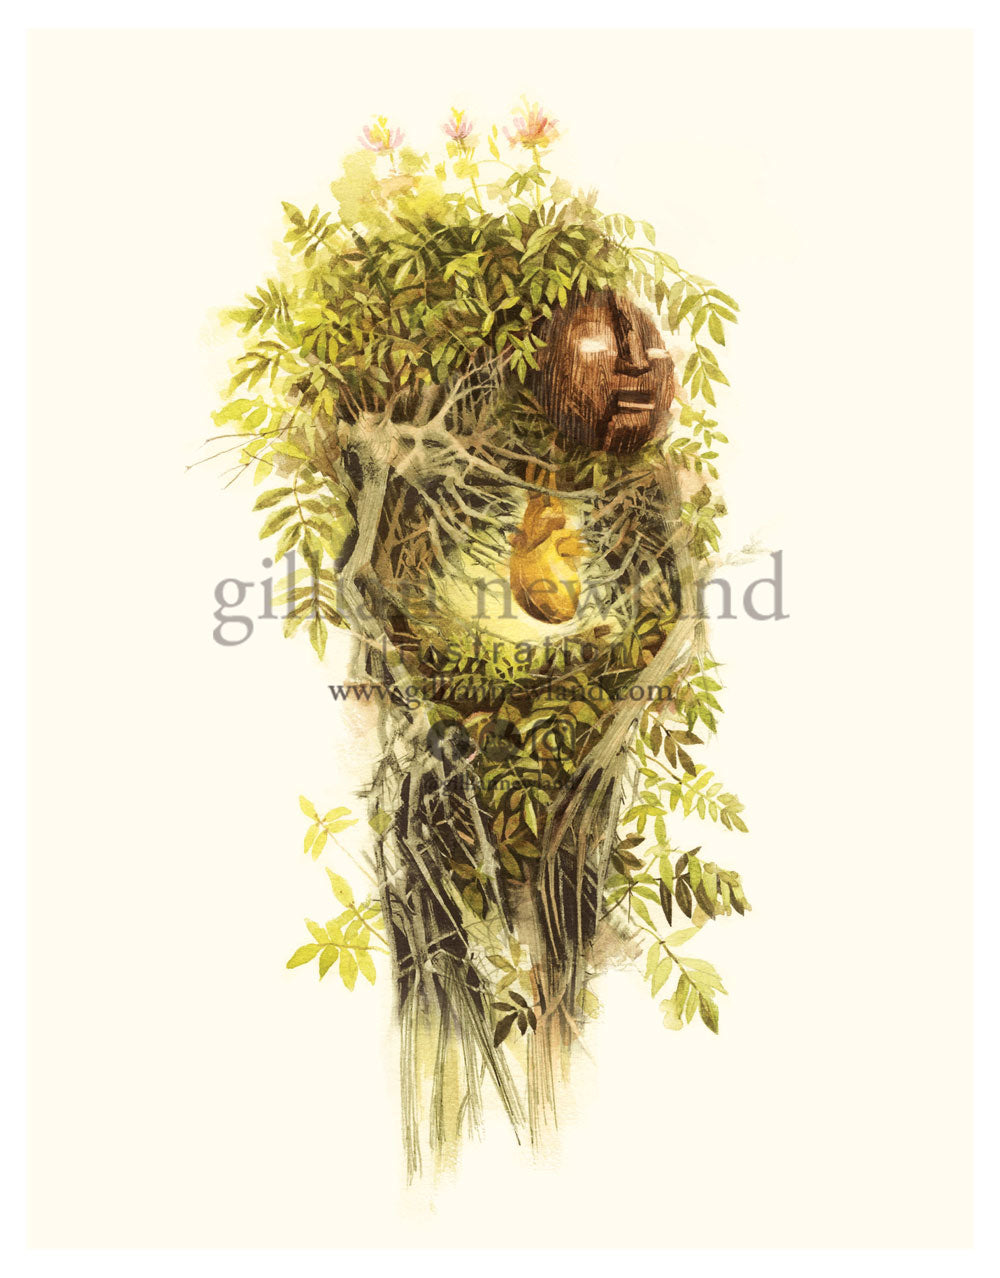 ~Green Man Series: Elderflower